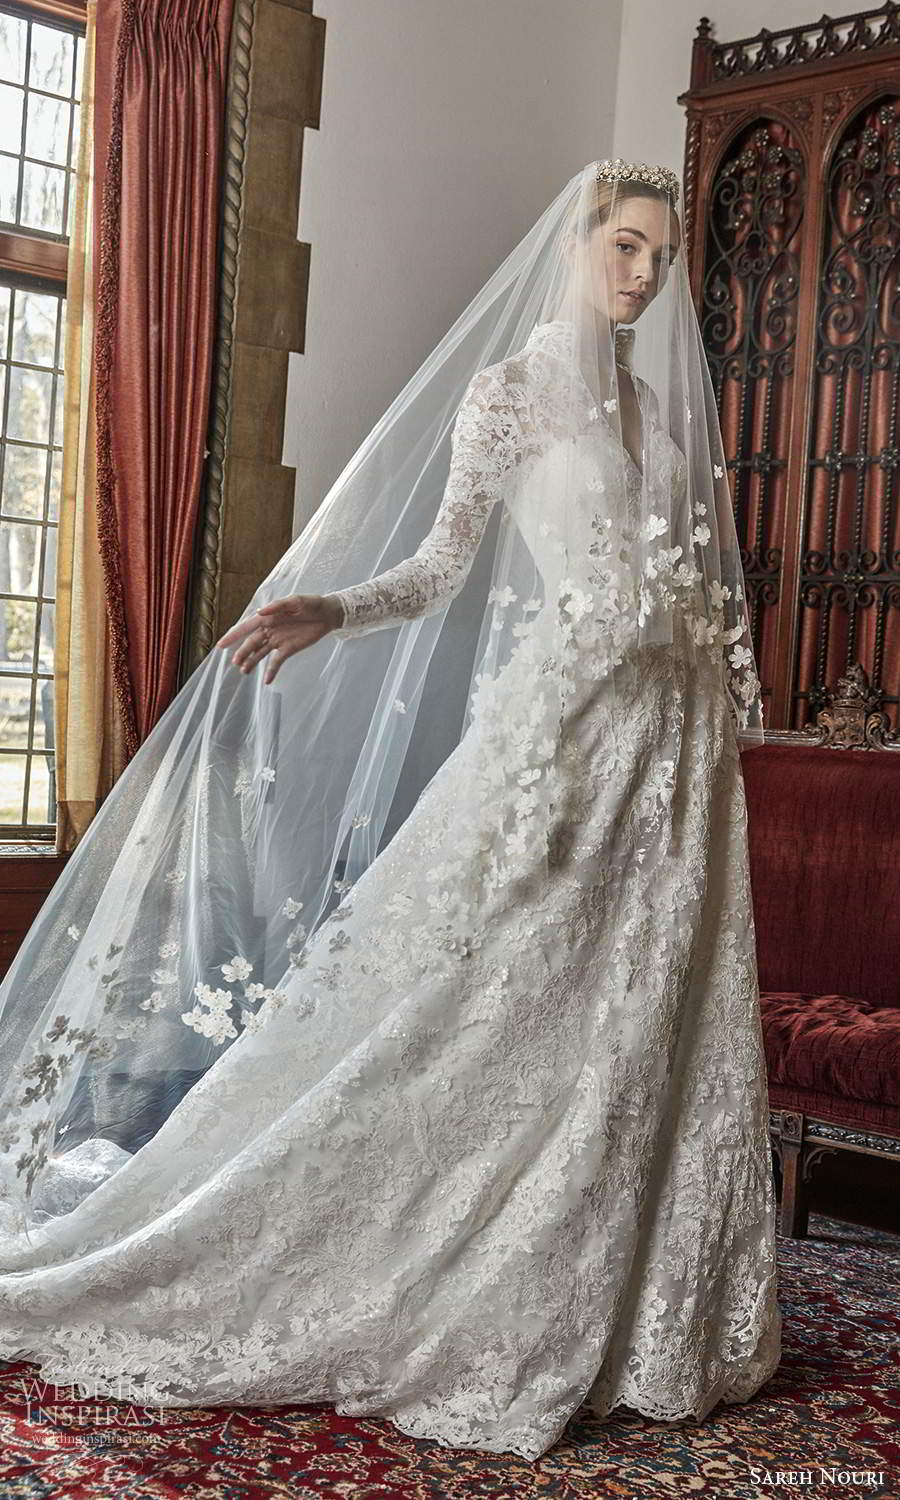 sareh nouri spring 2022 bridal long sleeve high collar v neckline fully embellished lace a line ball gown wedding dress chapel train veil (1) mv